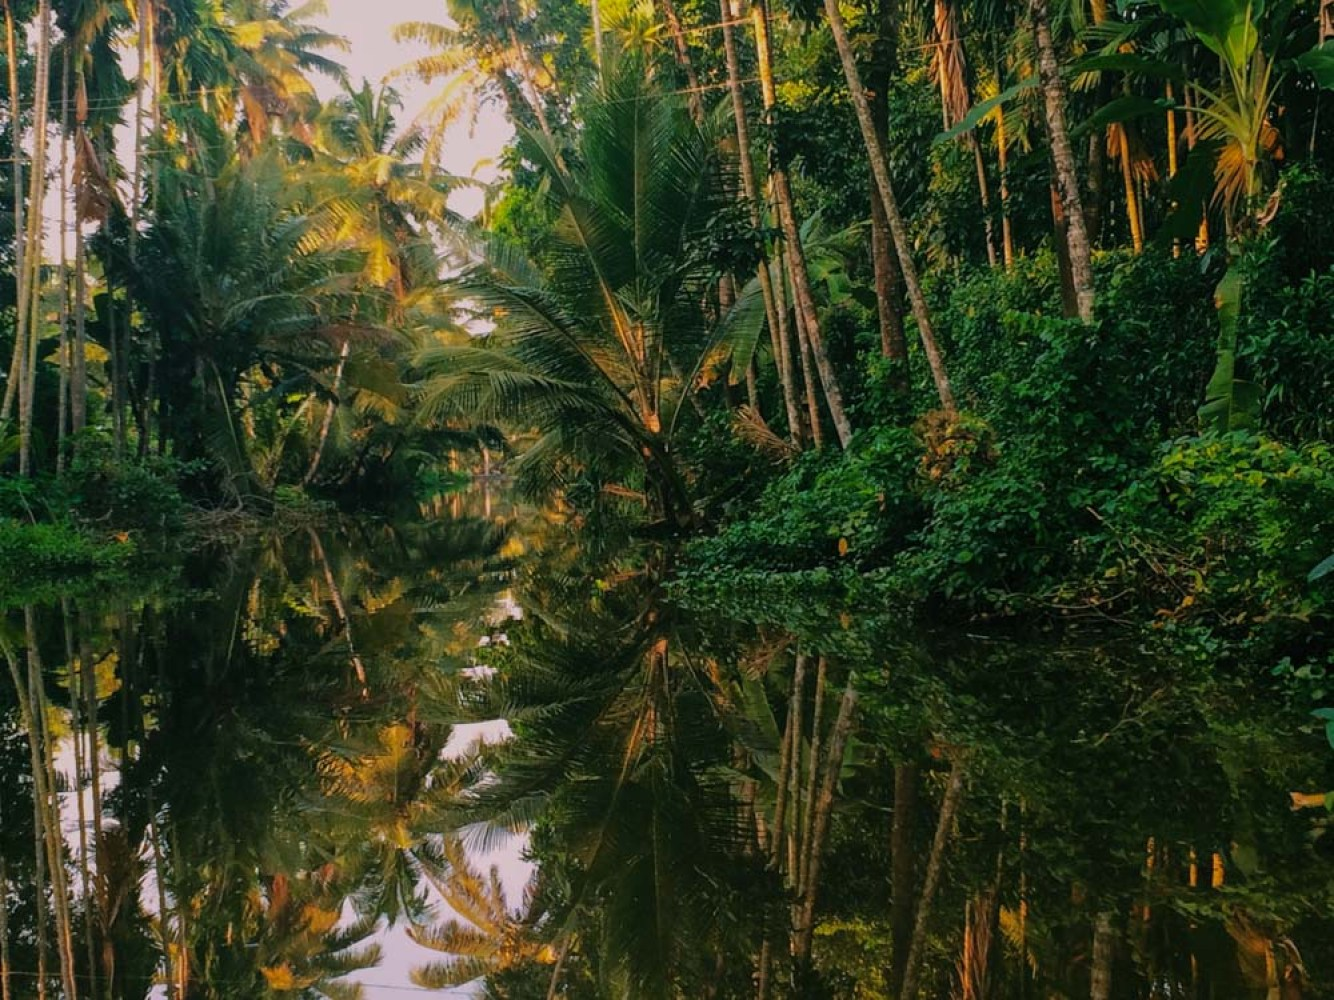 Mirrored palm trees in Kerala backwaters